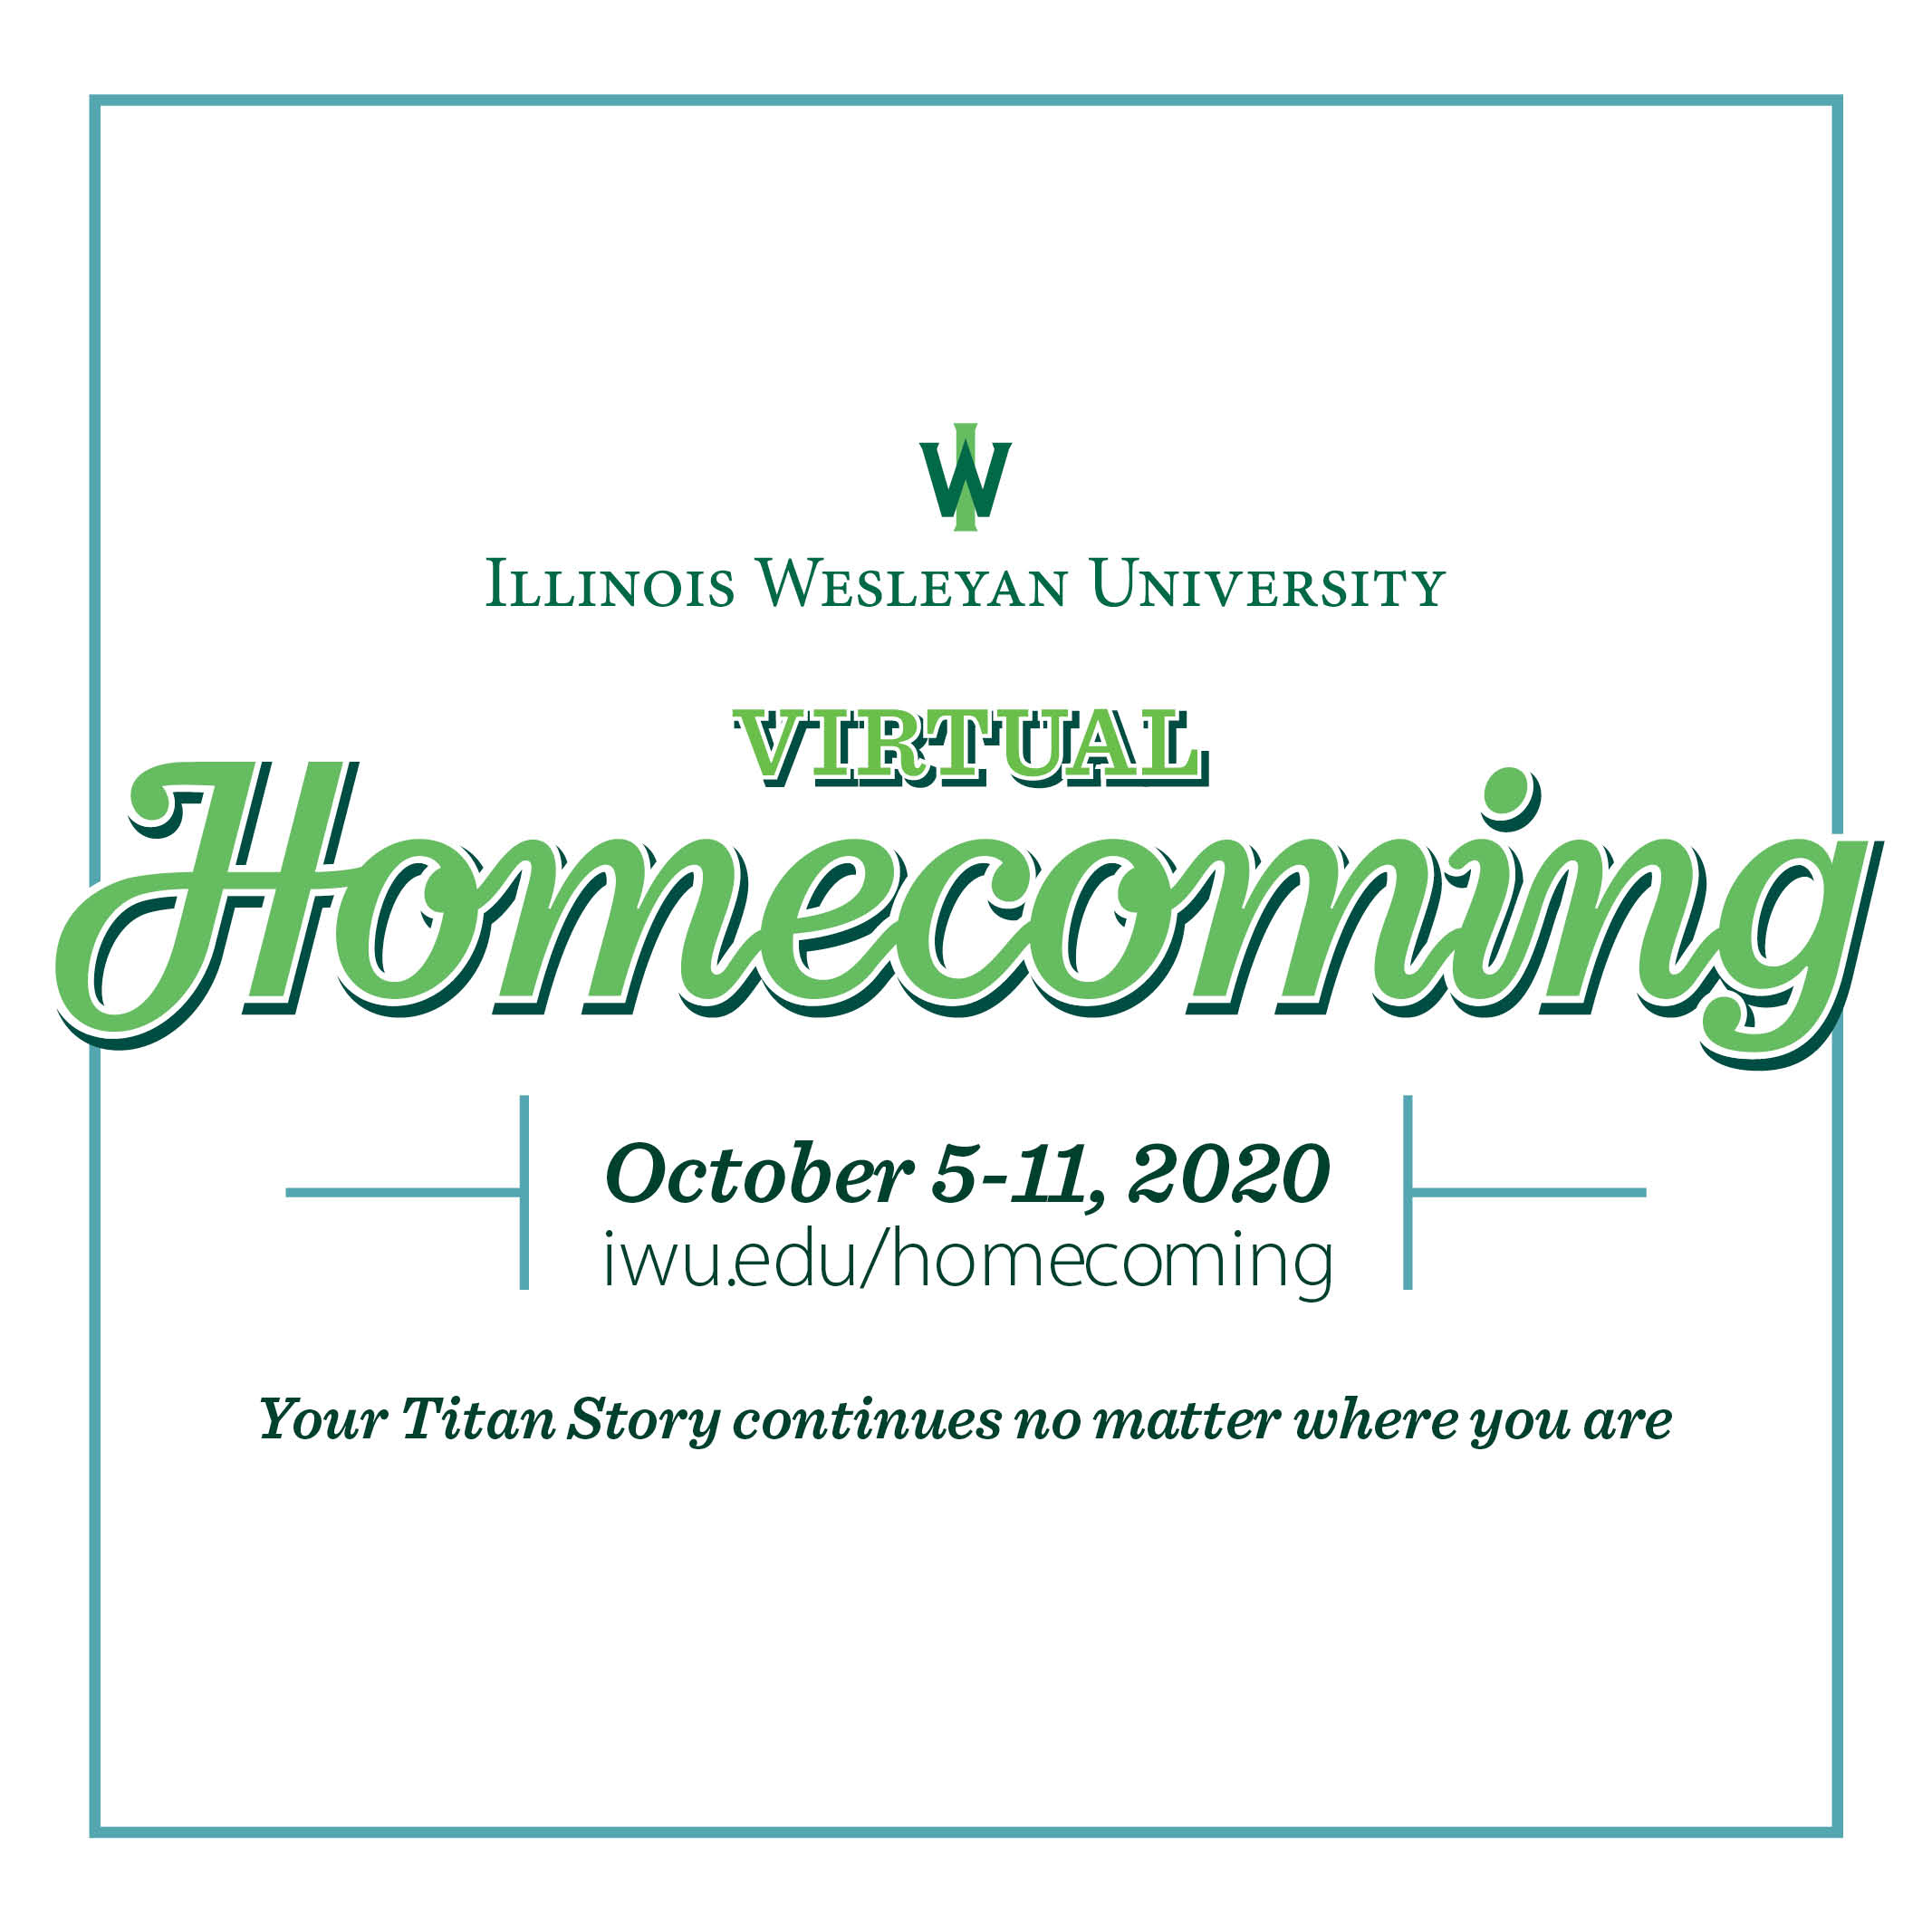 Homecoming instagram image